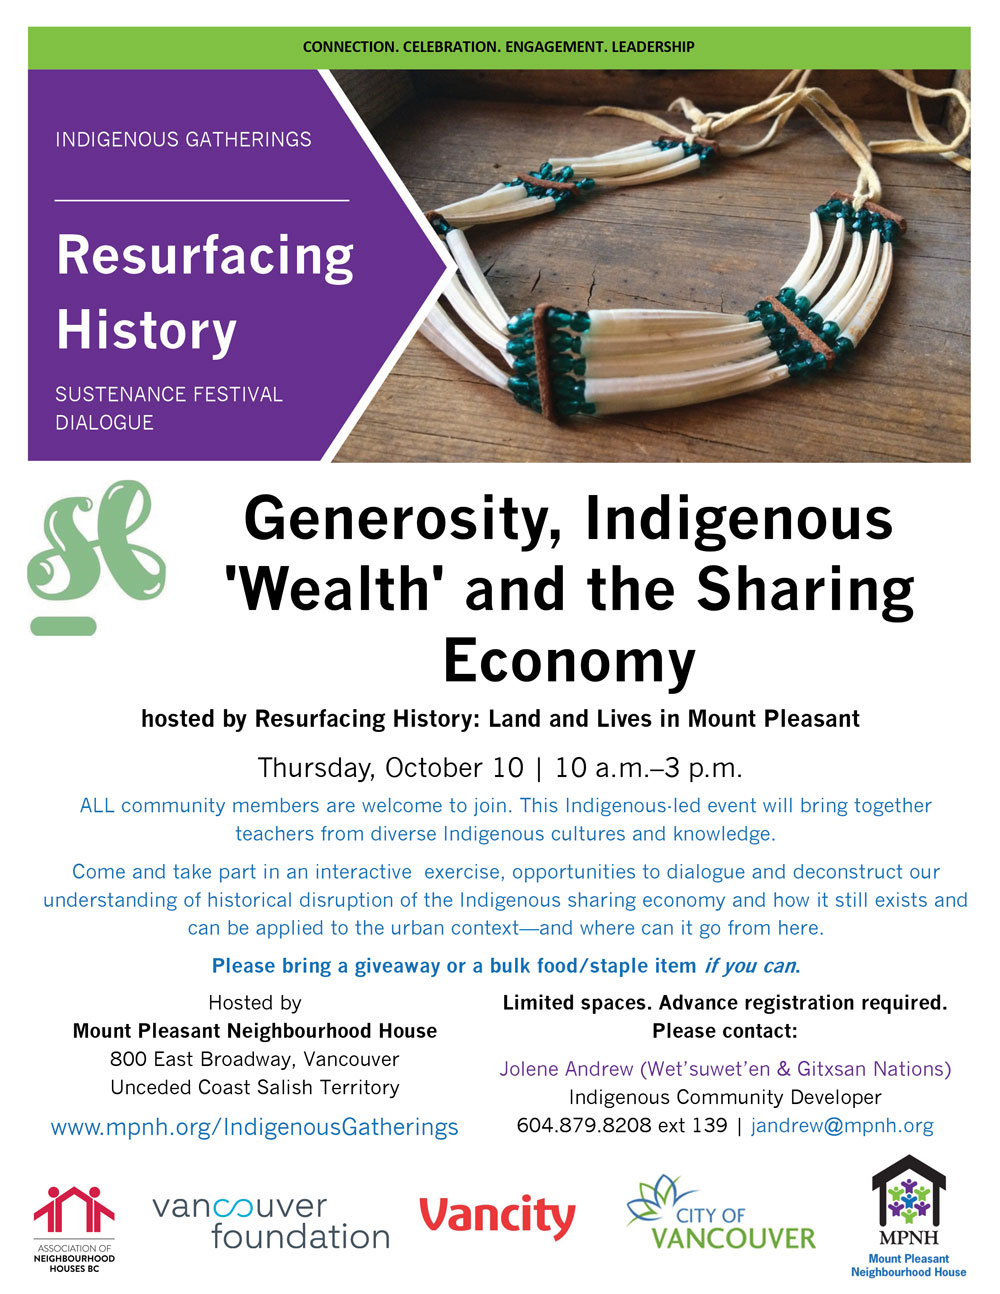 An image of the poster with event details, featuring a powwow regalia necklace made of dentalia shells (a form of Indigenous currency)